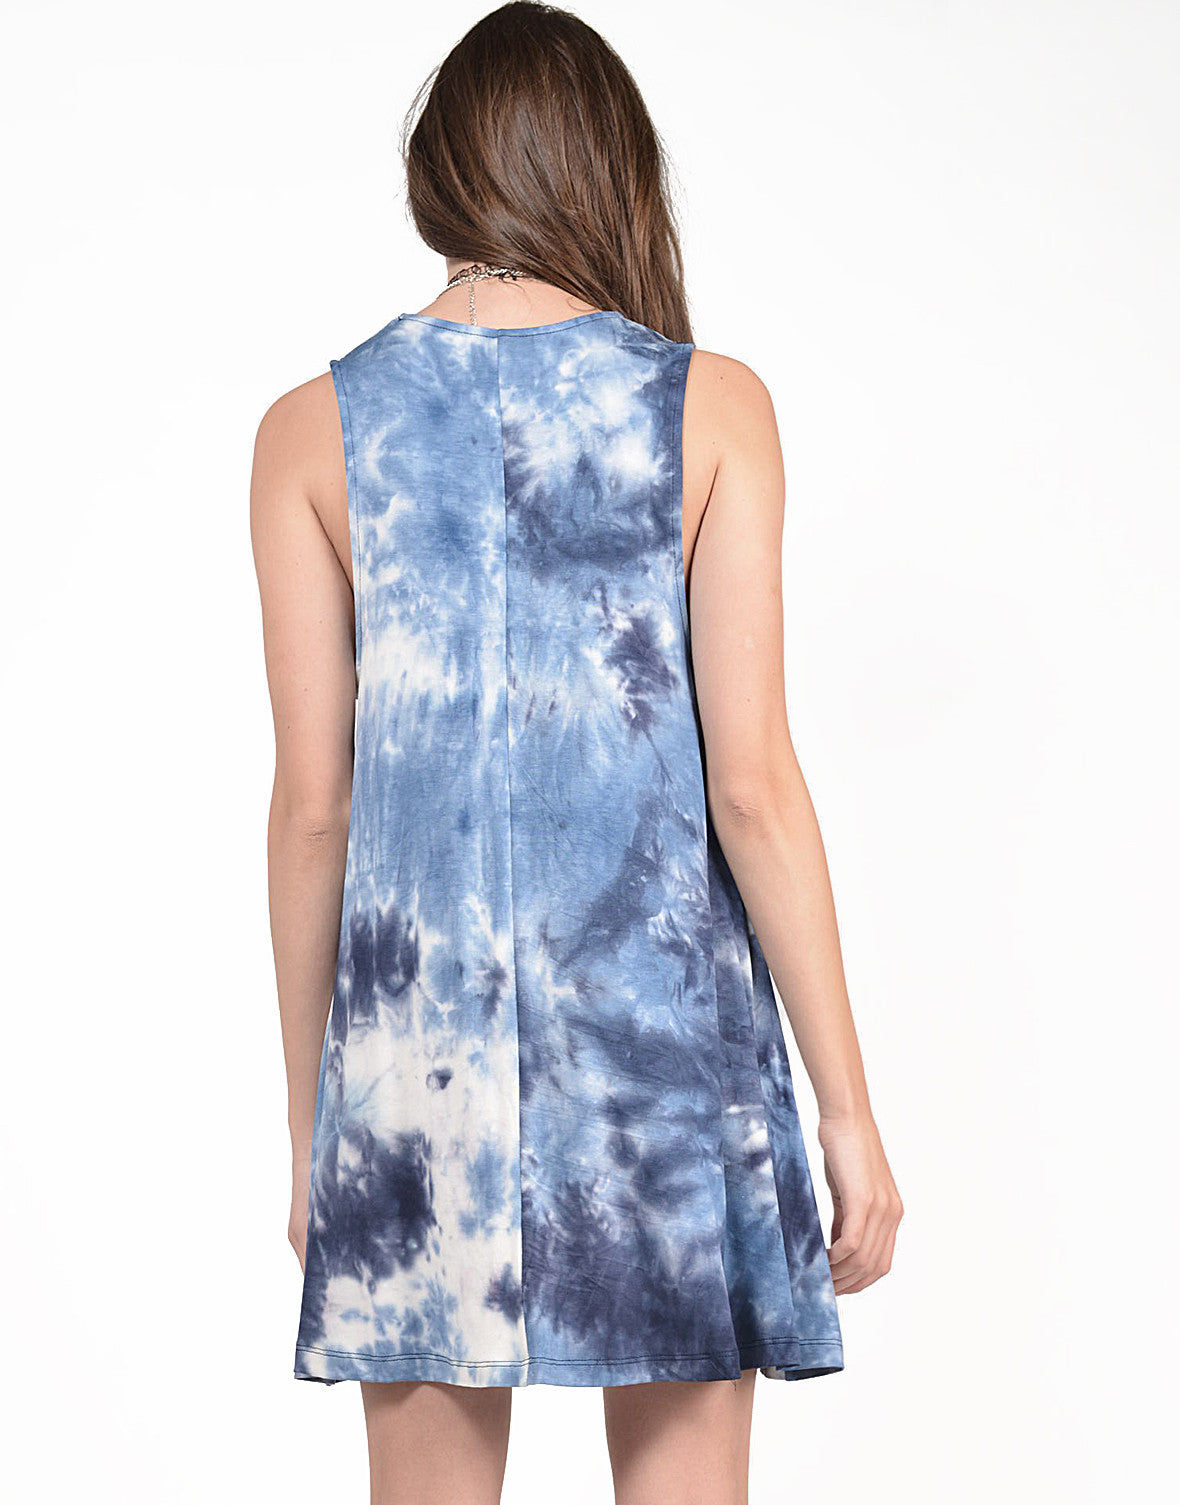 Back View of Flared Tie-Dye Dress